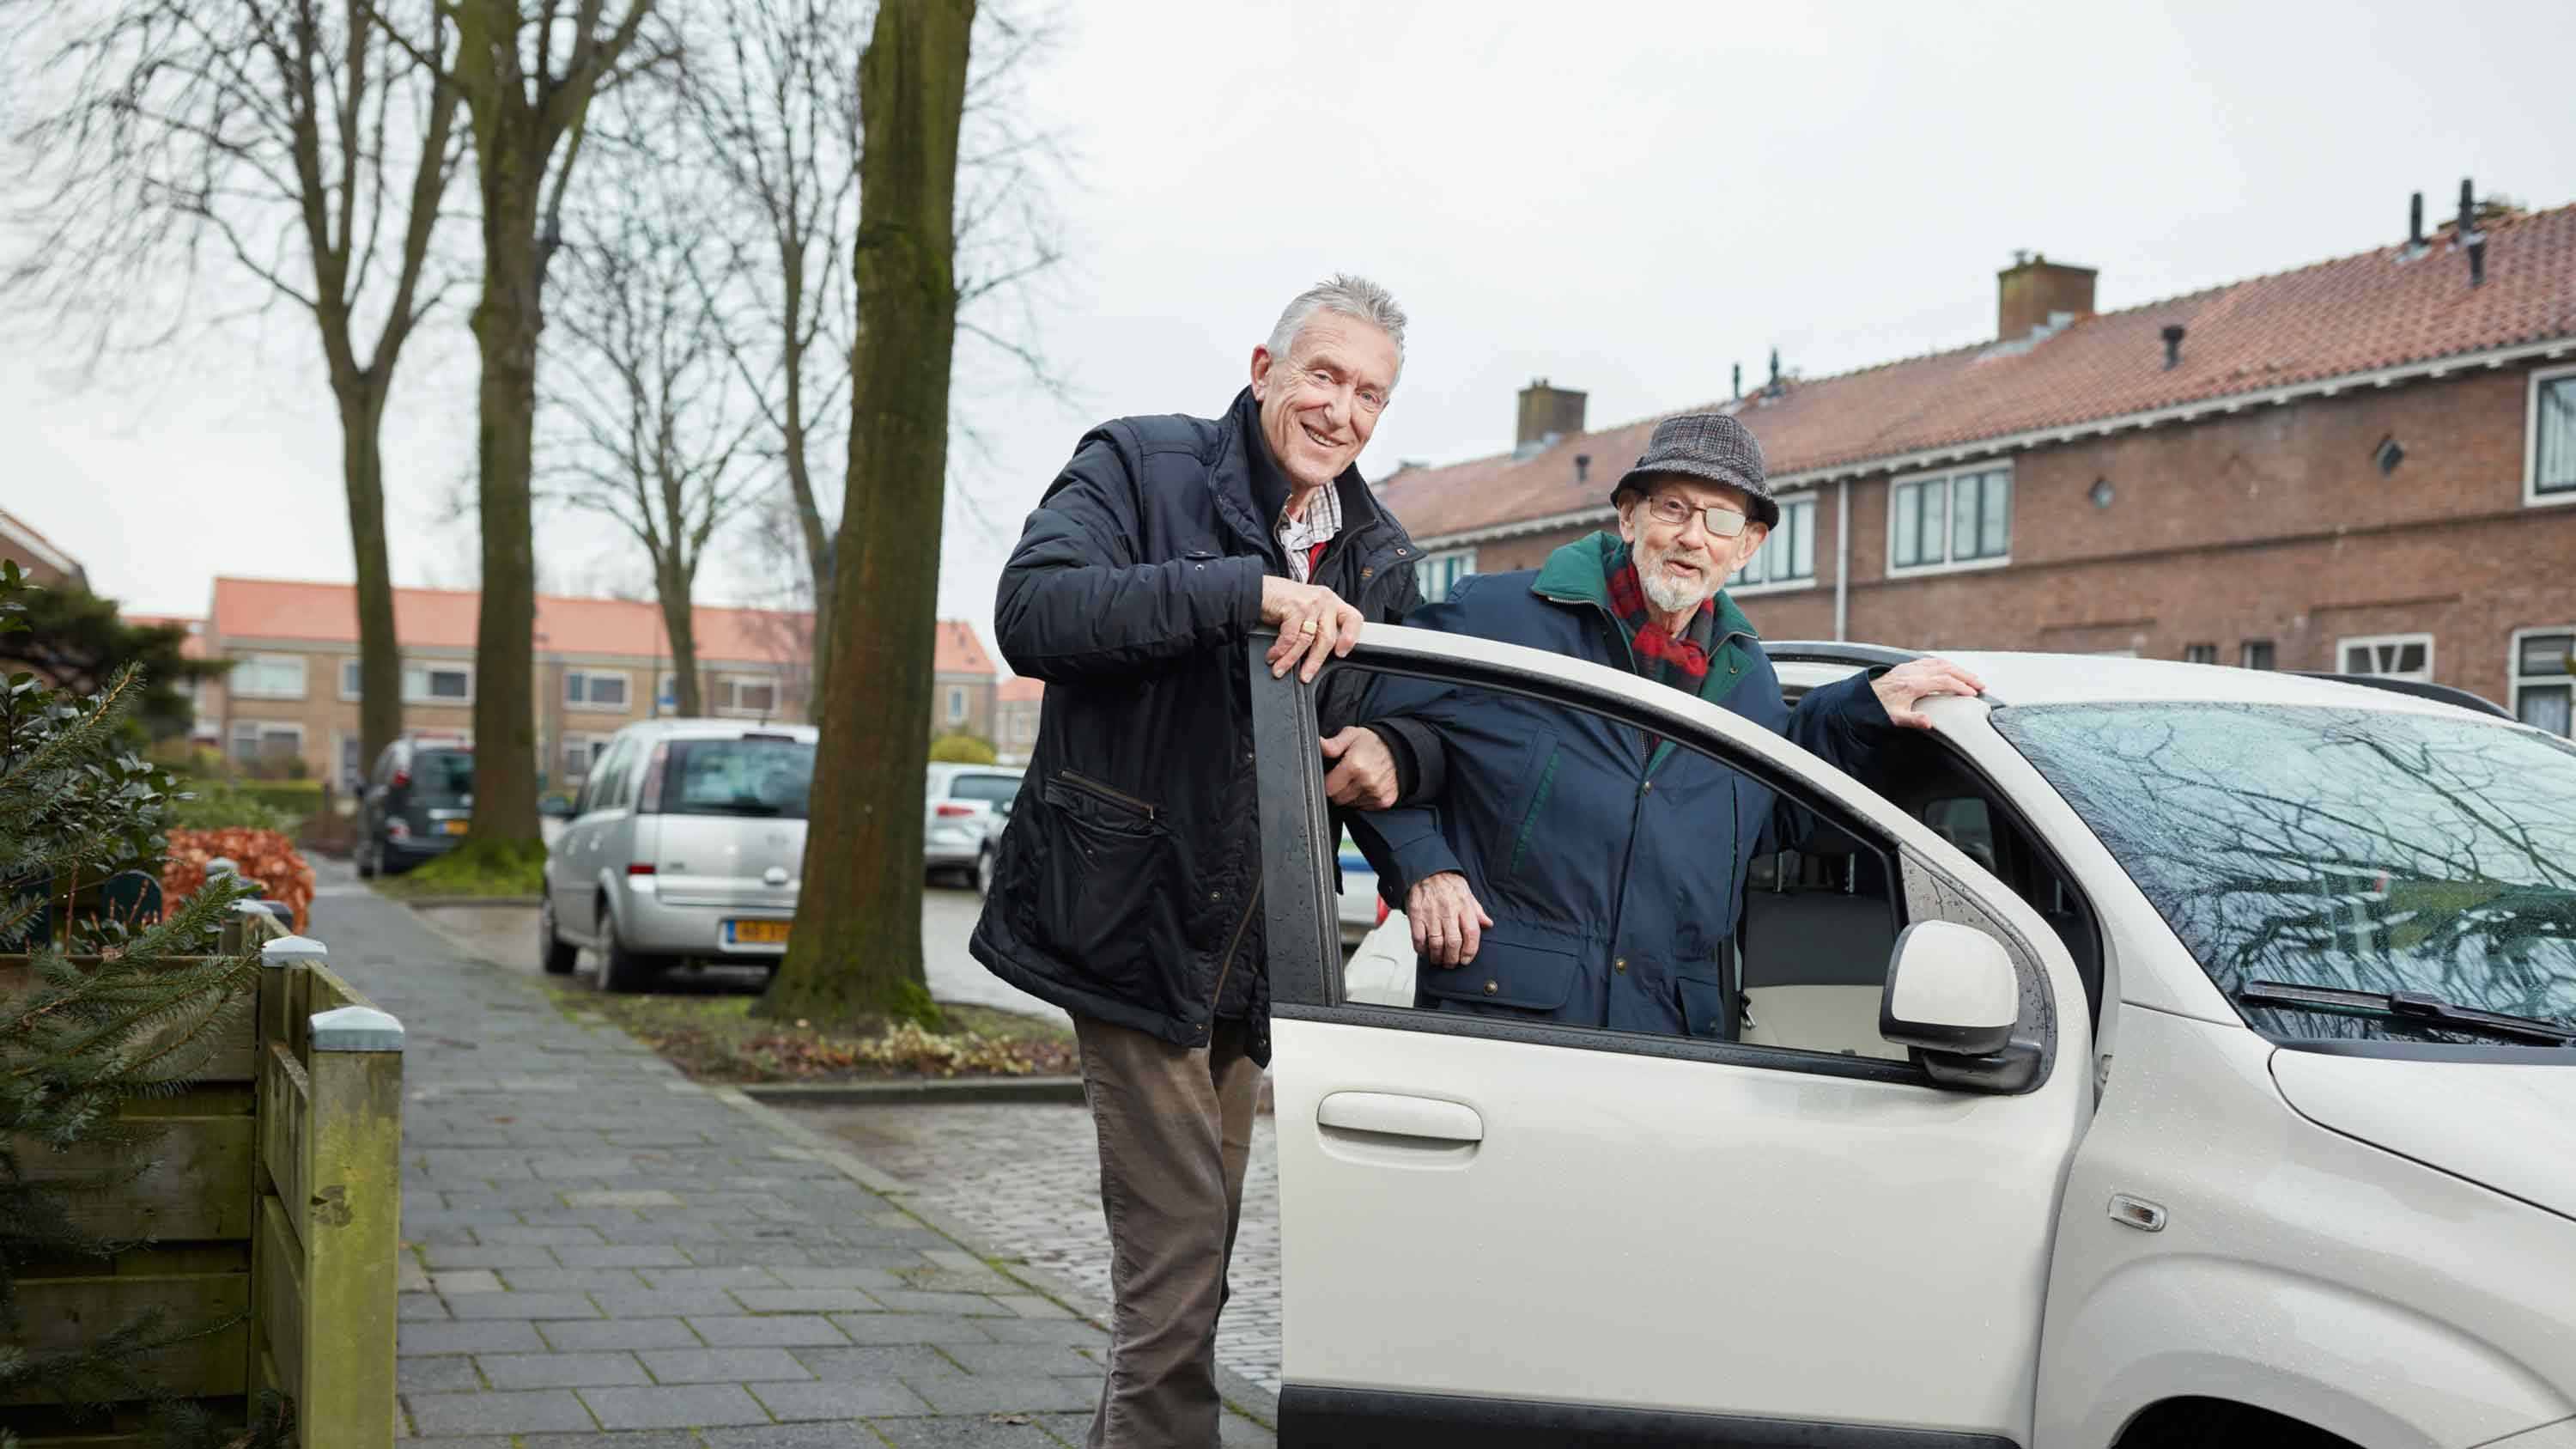 ANWB Automaatje in Smallingerland